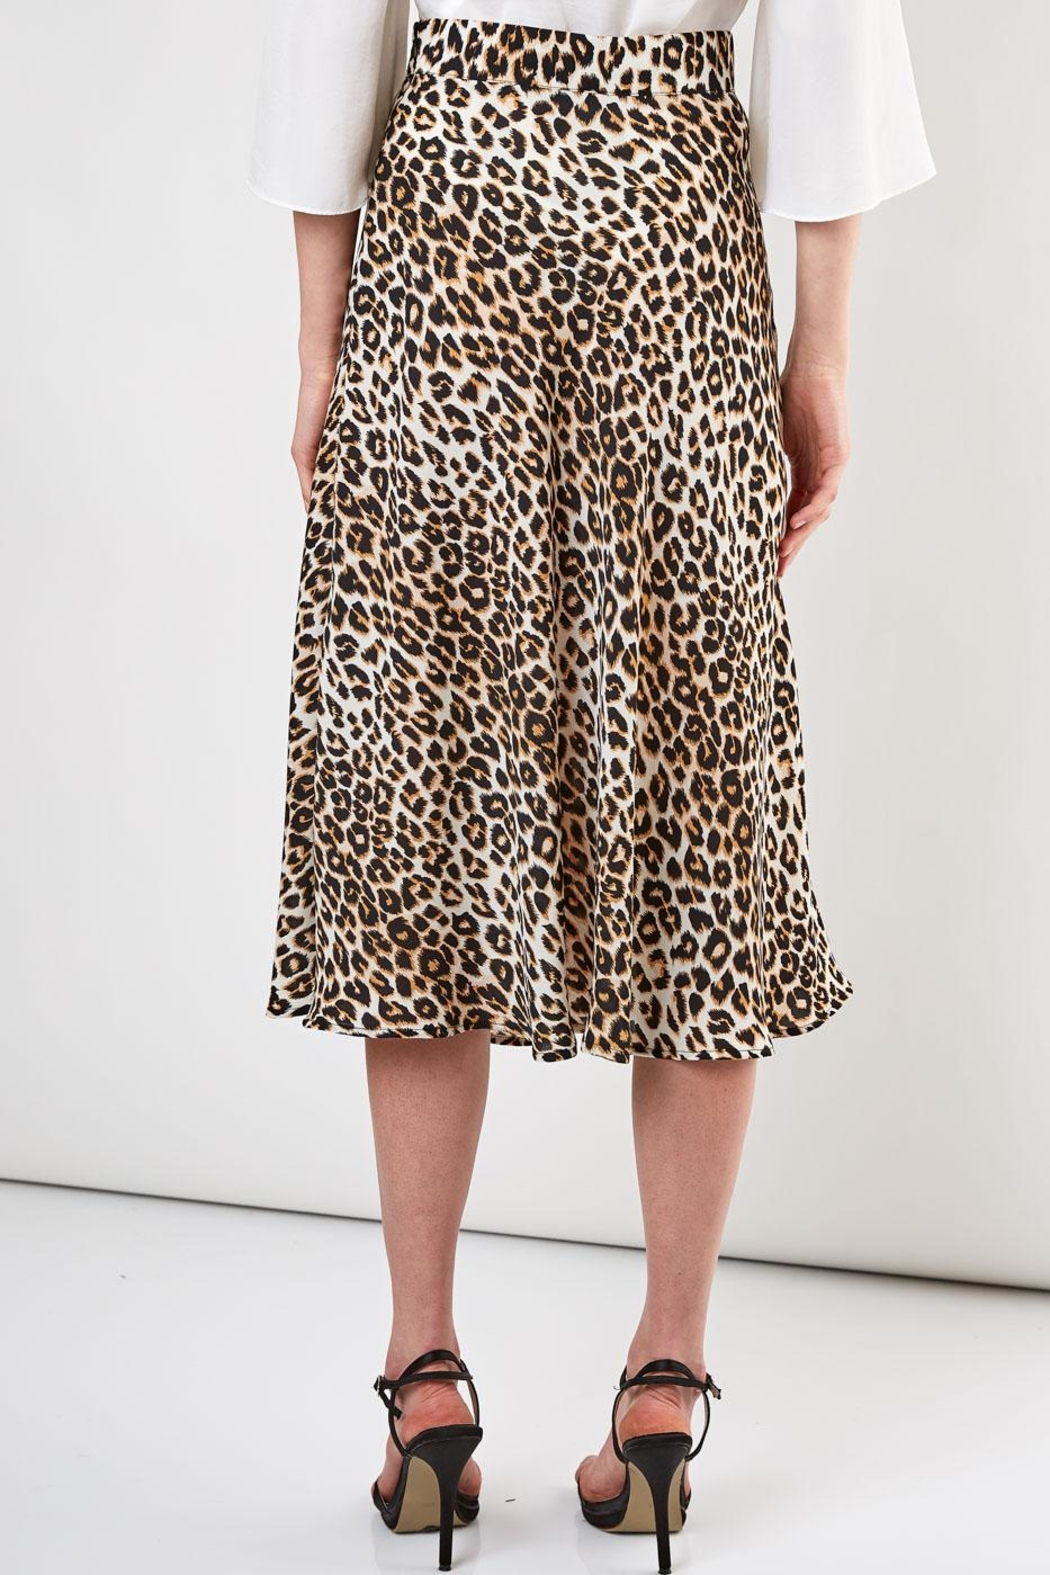 Do & Be Leopard Midi Skirt - Side Cropped Image